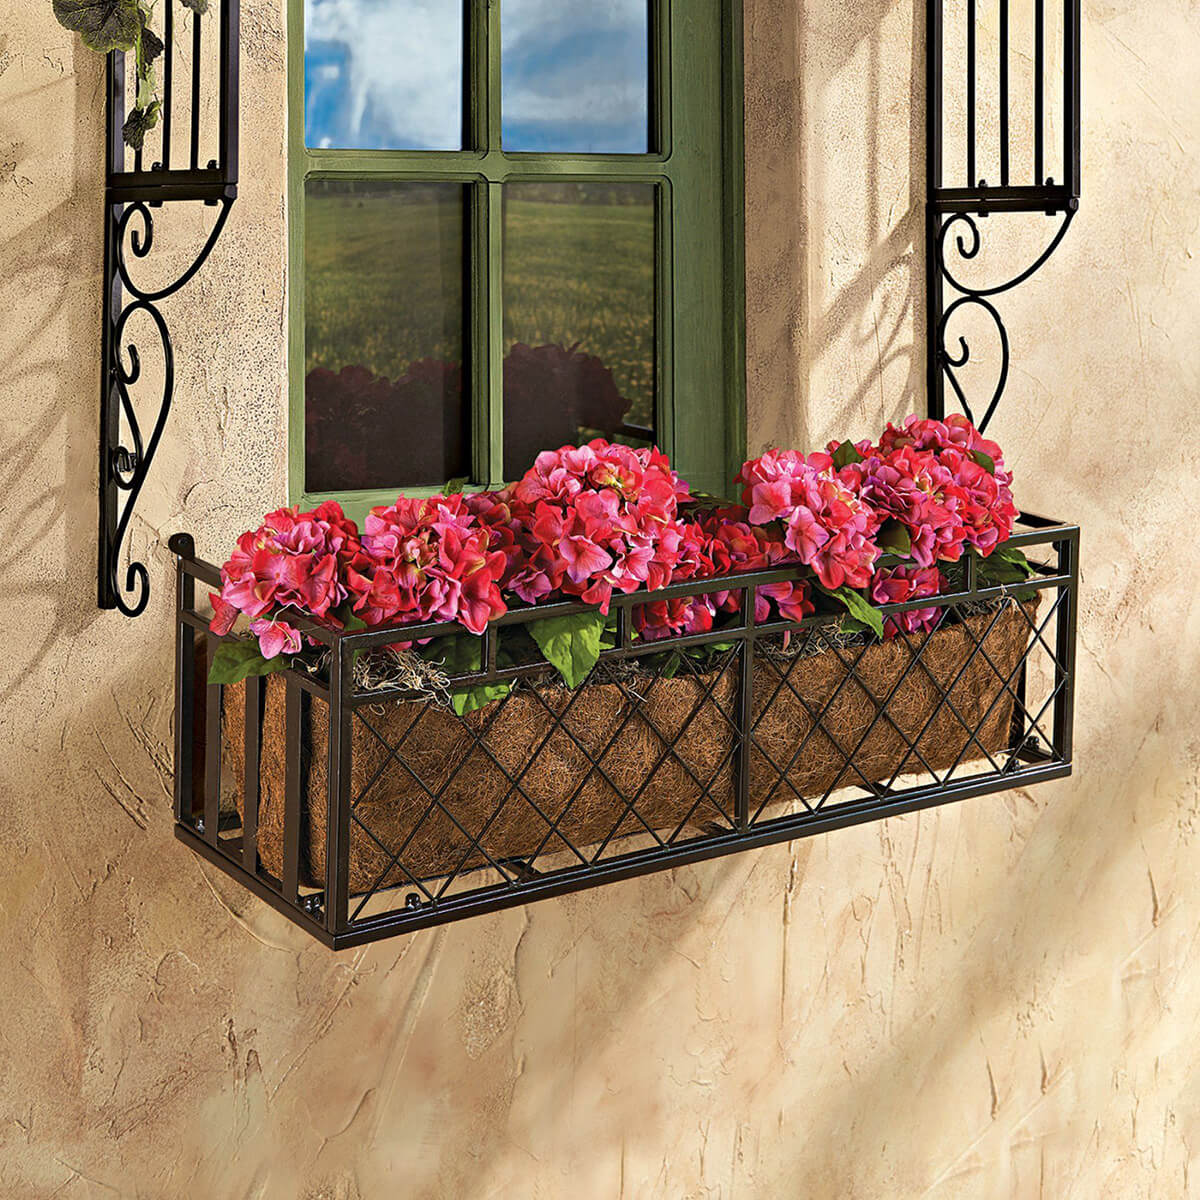 a black metal criss cross window box for potted plants and flowers allows changing the plants whenever you want